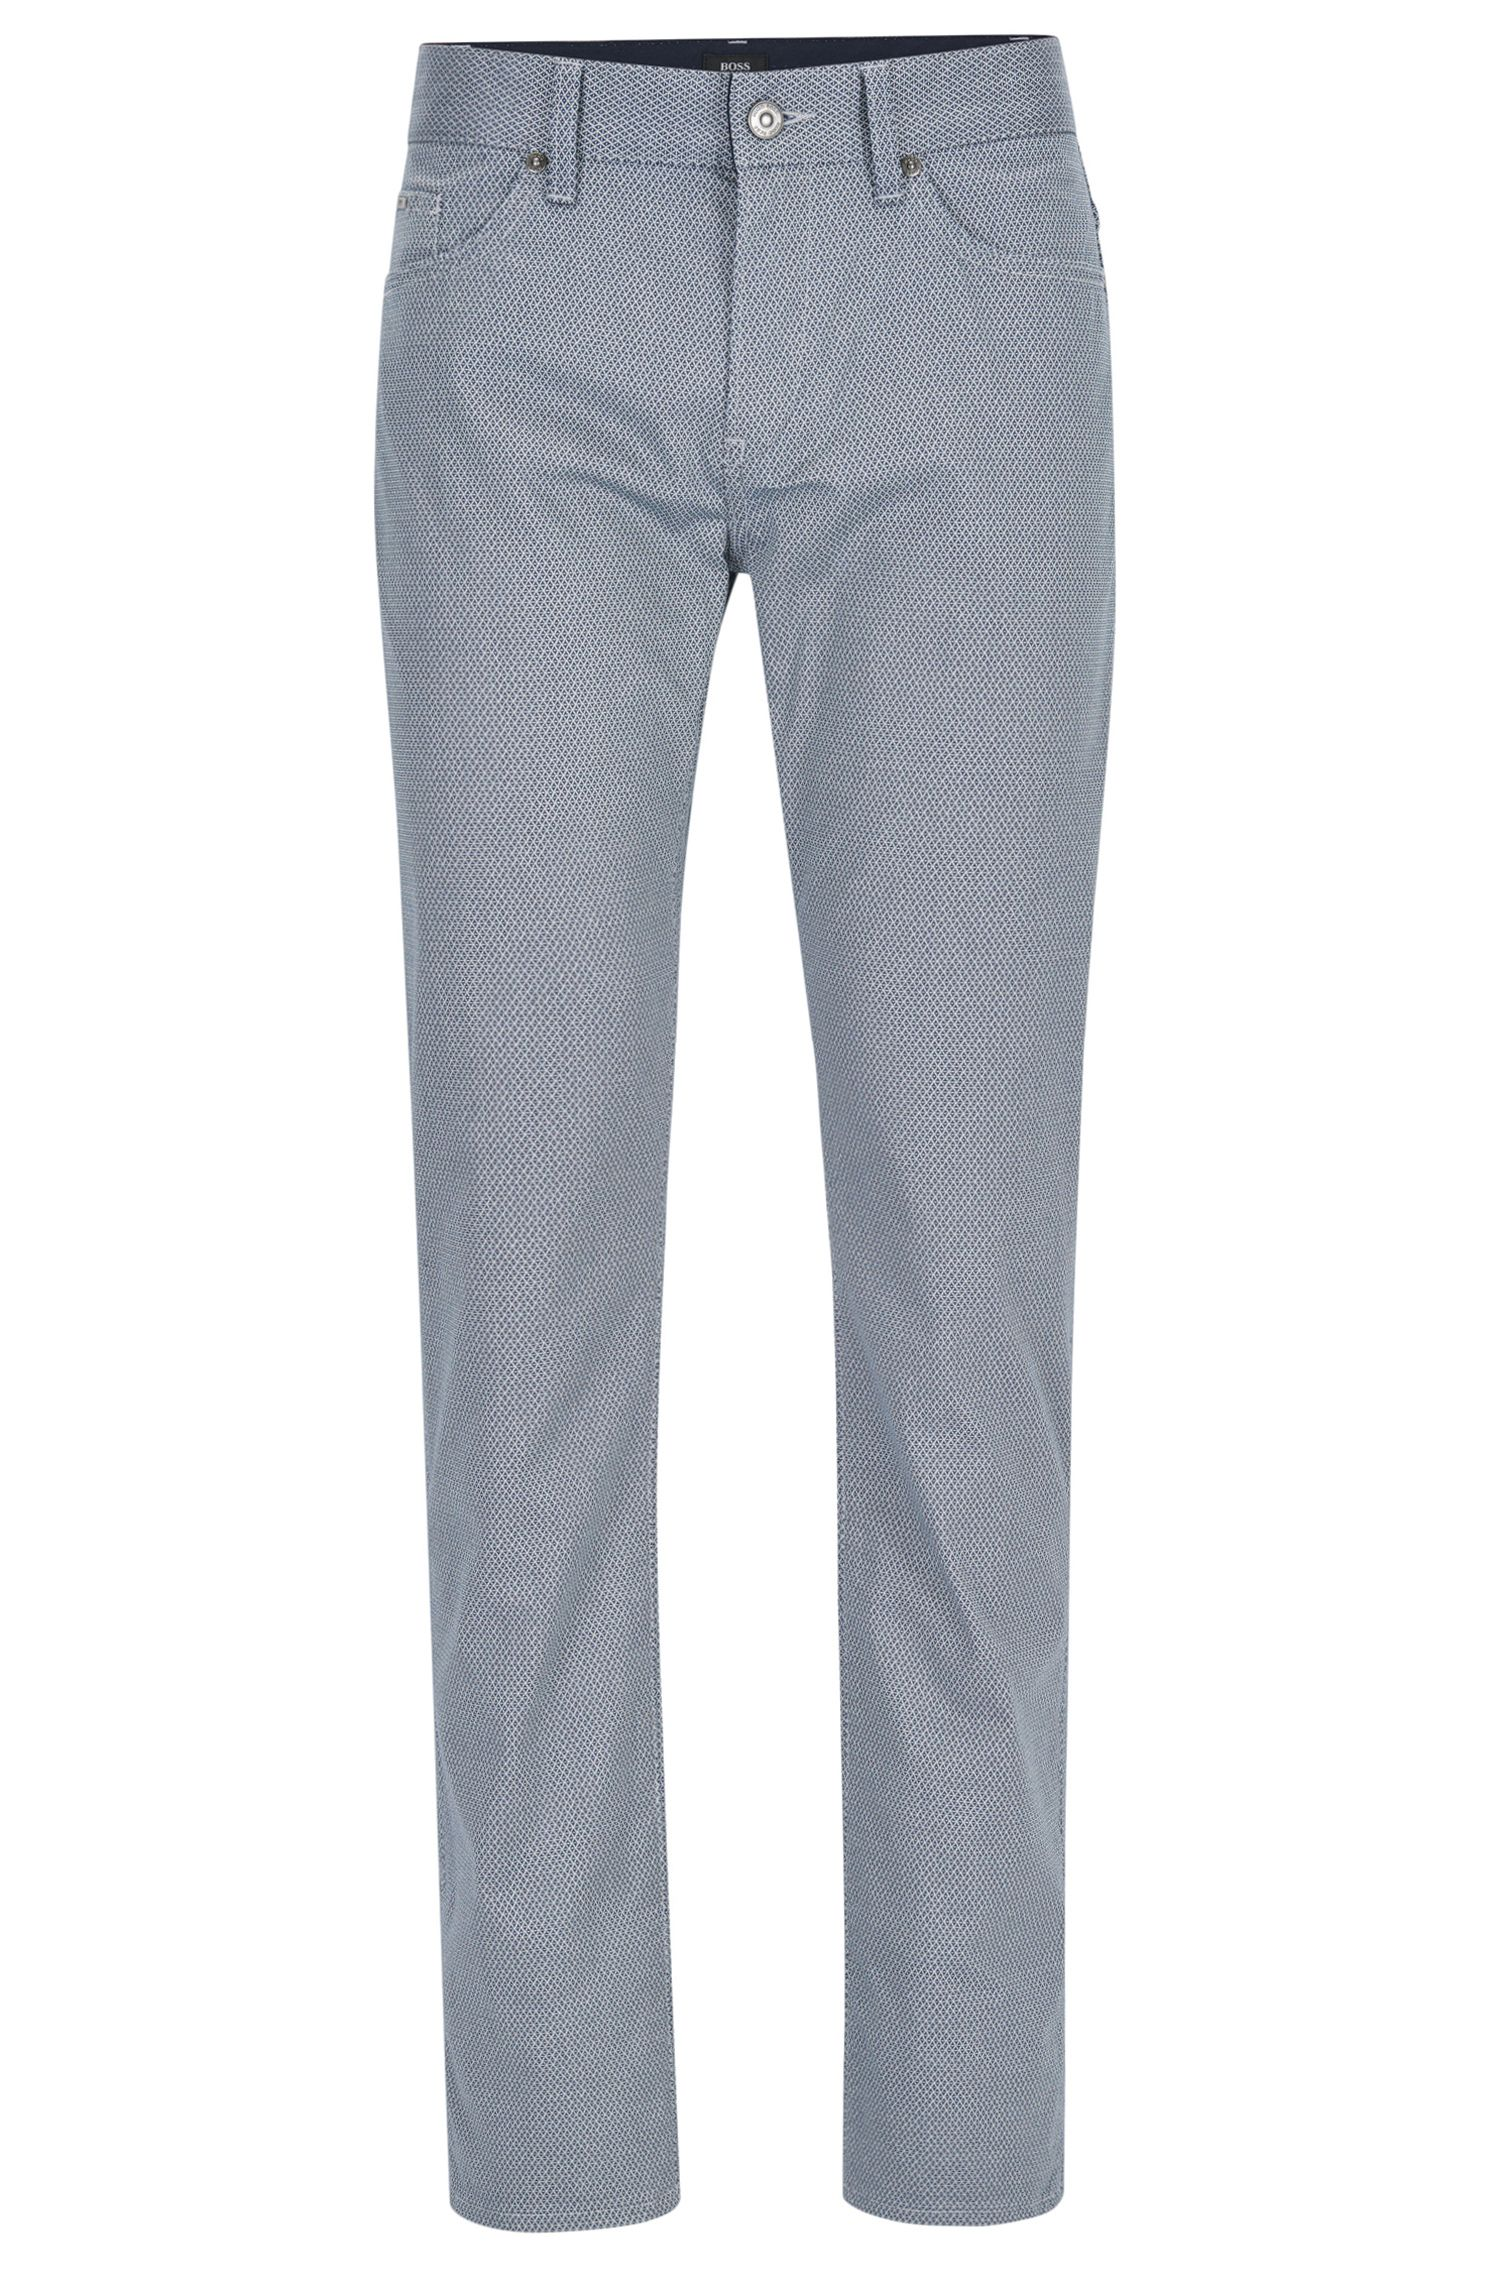 Patterned Stretch Cotton Pant, Slim Fit | Delaware